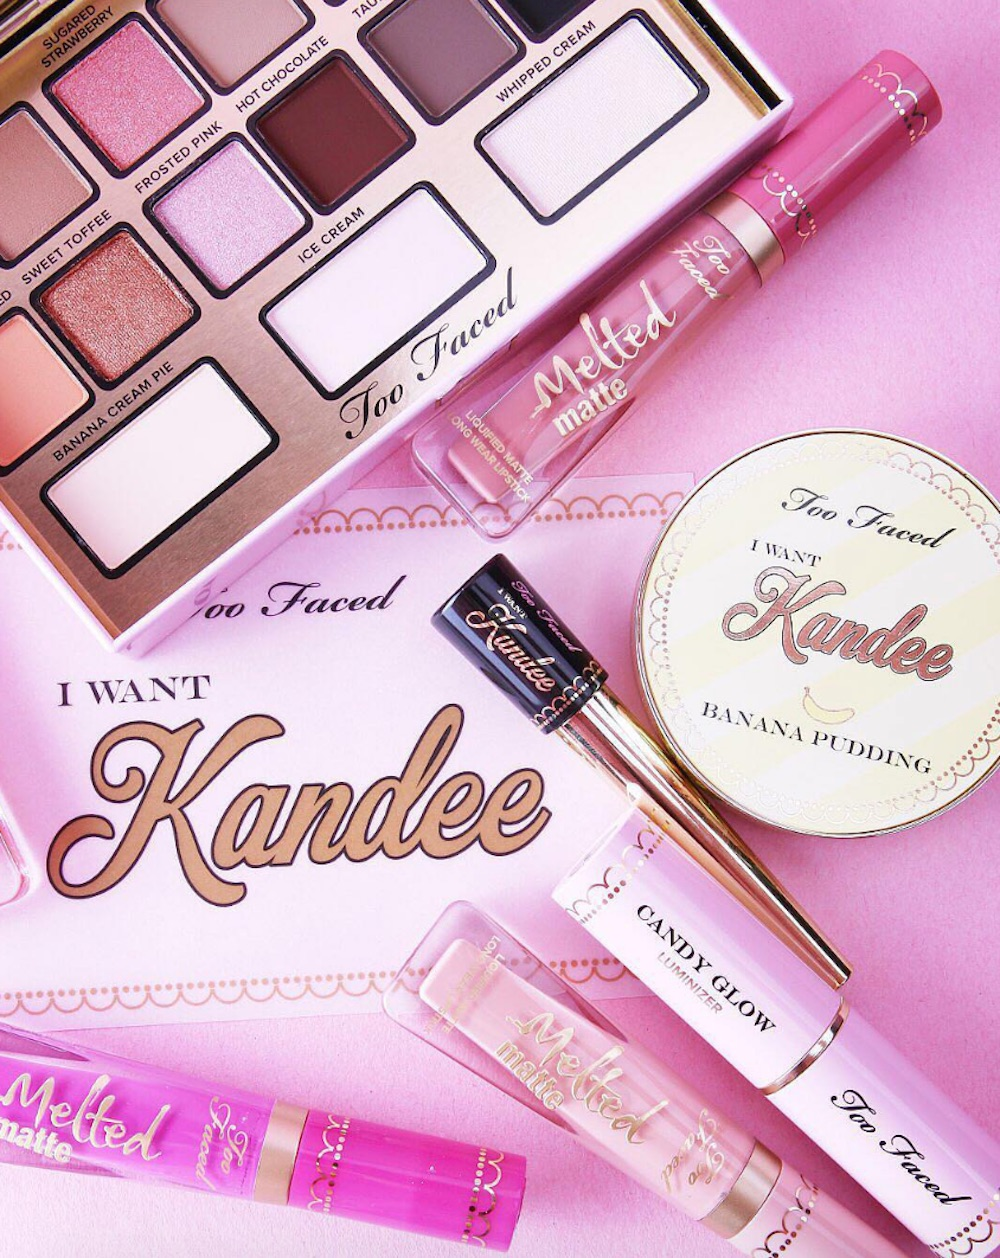 Ulta released the Too Faced x Kandee Johnson collection early, and it's a delicious treat